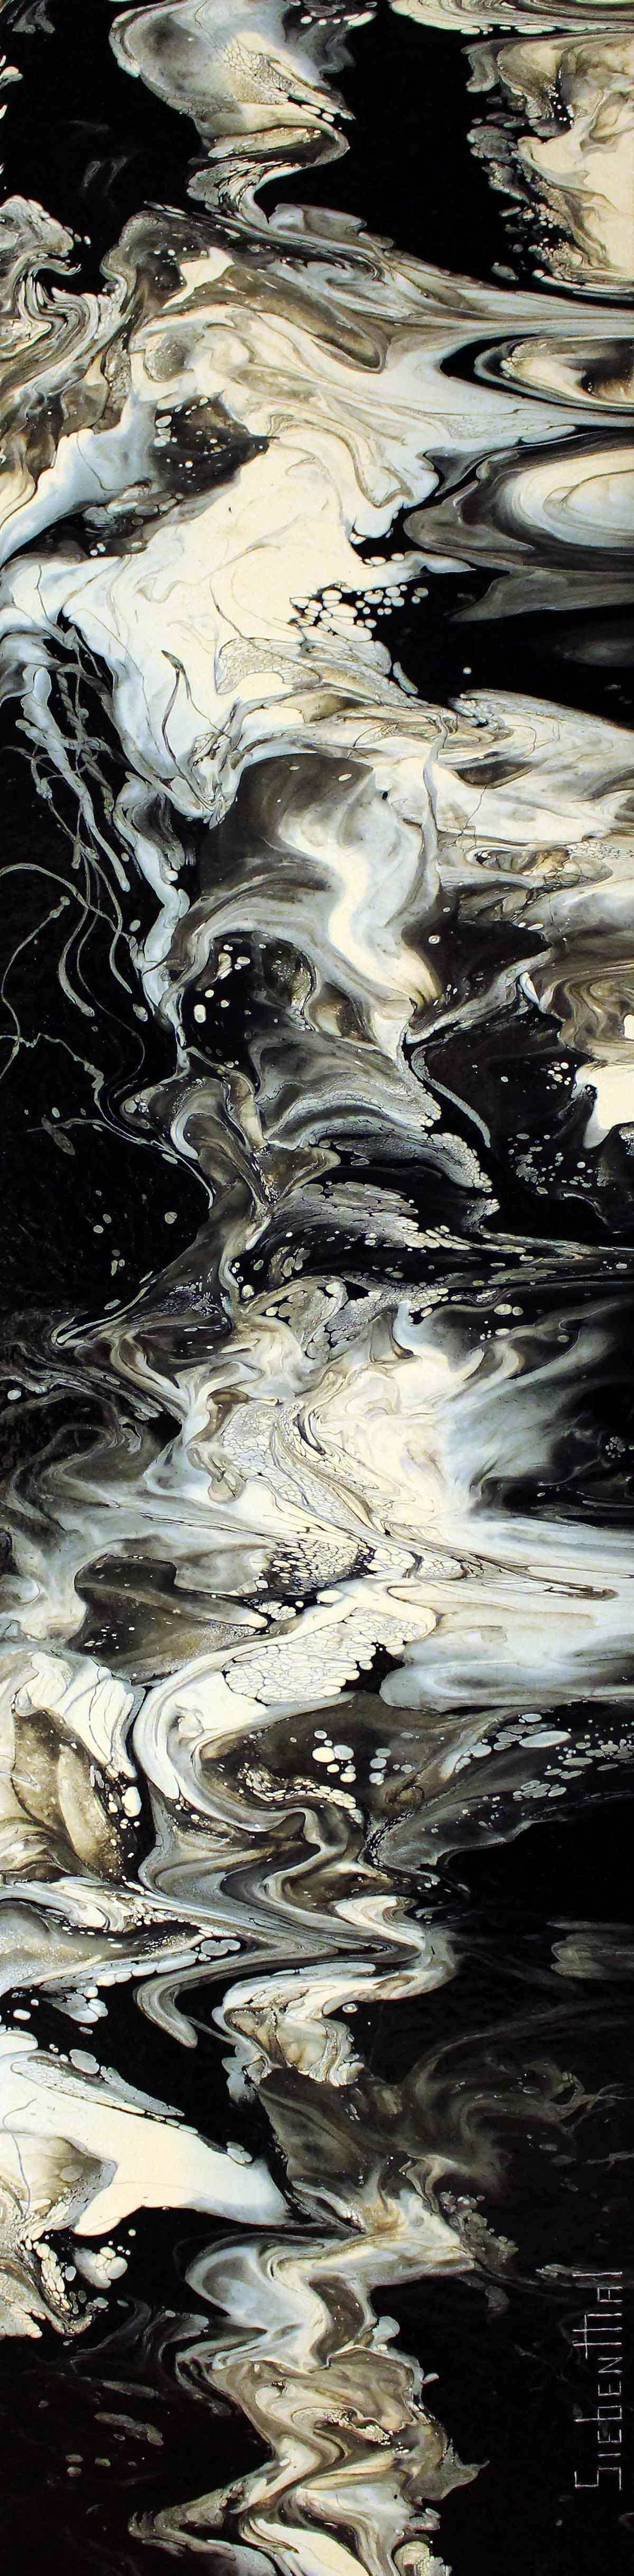 Act of God - Fluid Acrylic Art by Eric Siebenthal - Acrylicmind.com